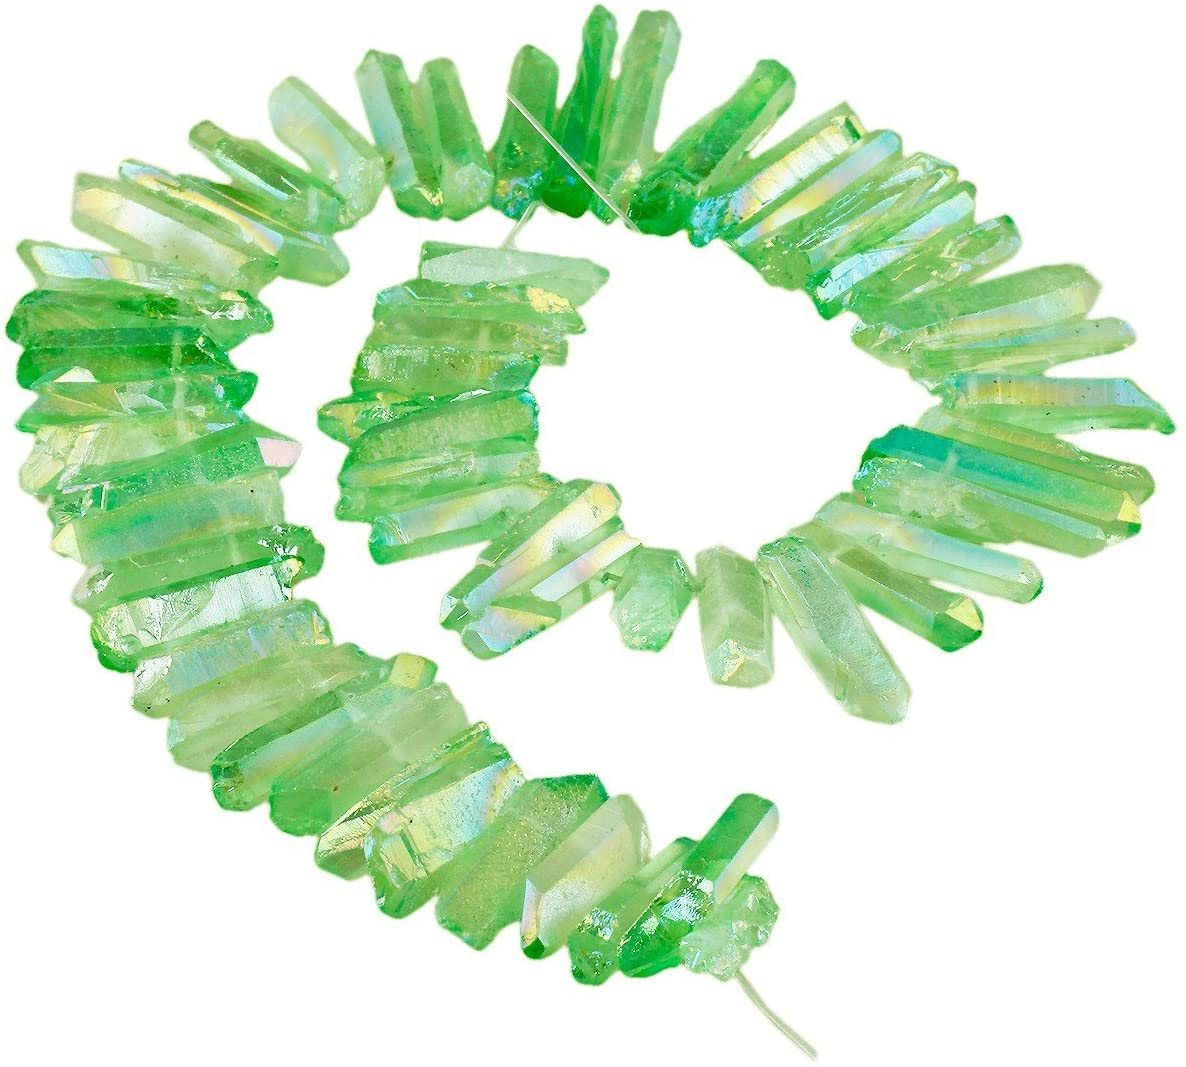 Clear Crystal Quartz Points Beads Crown Crystal Beads Crystal Strands Raw Crystal Points Beads Crystal Tower Beads